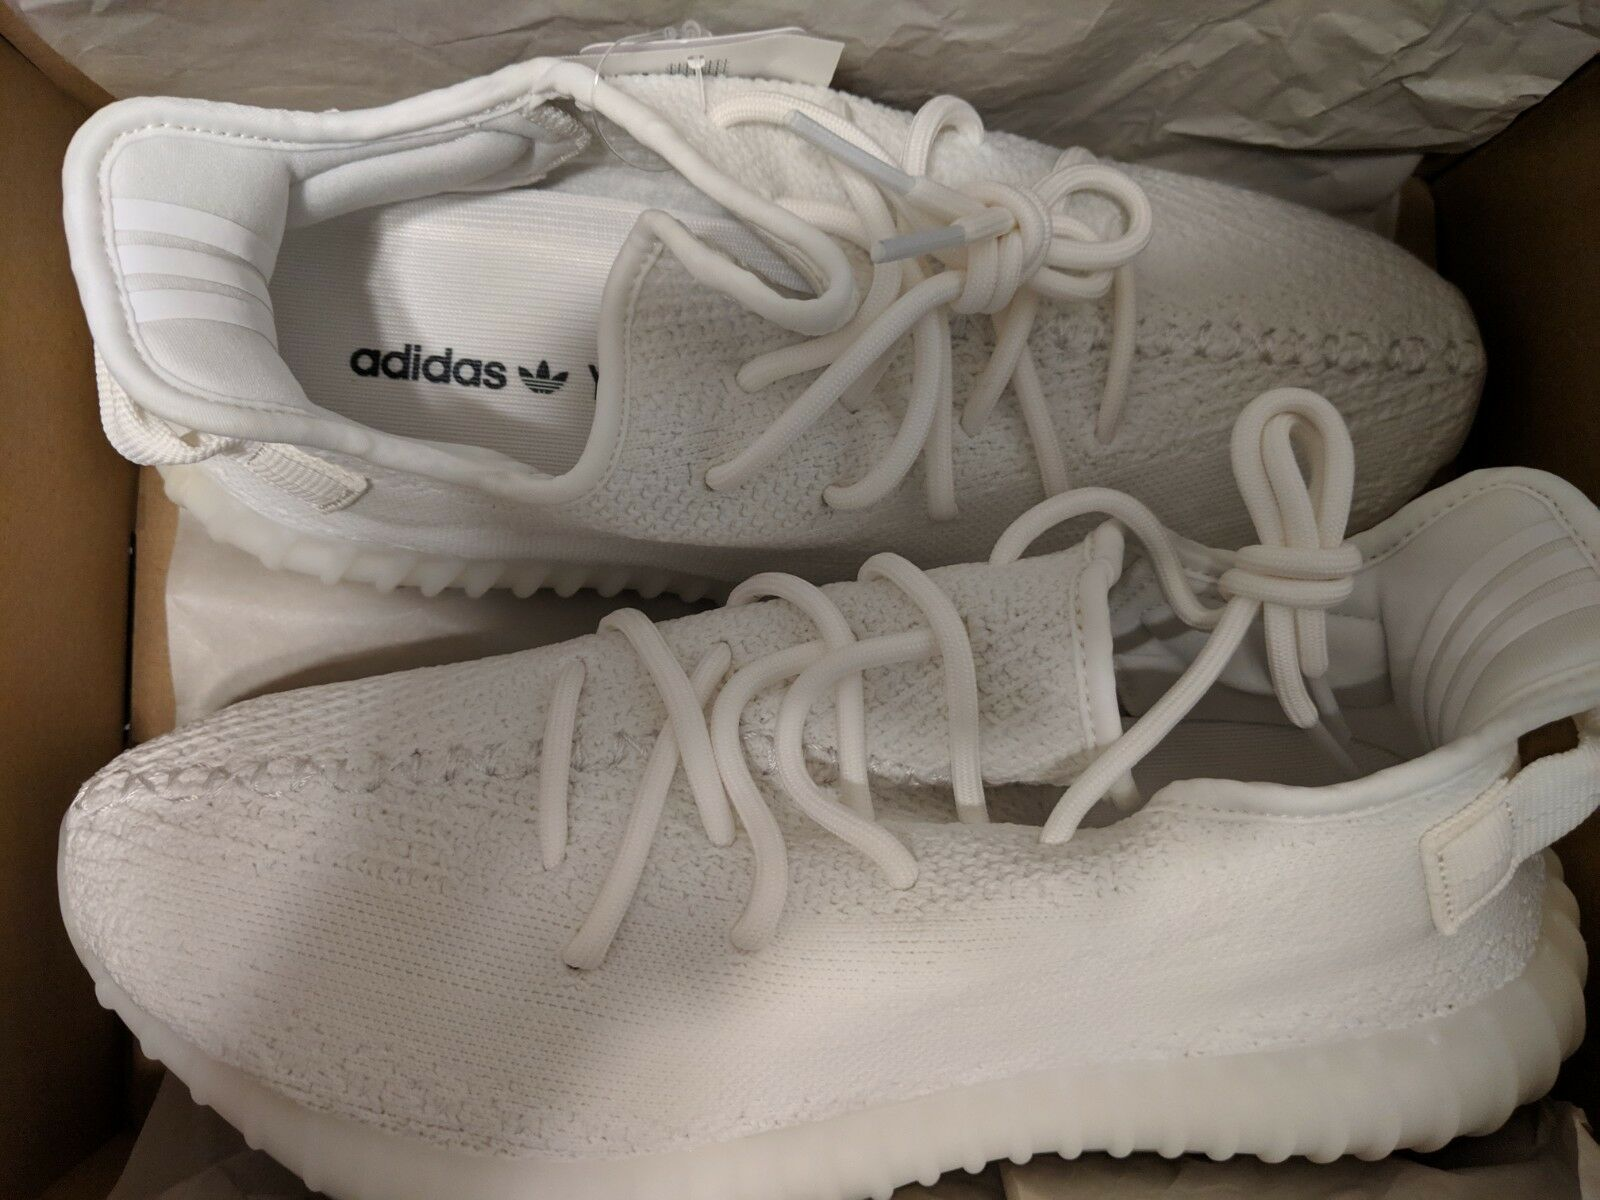 DS Adidas Yeezy Boost 350 v2 CP9366 White Cream Size 9.5  BRAND NEW